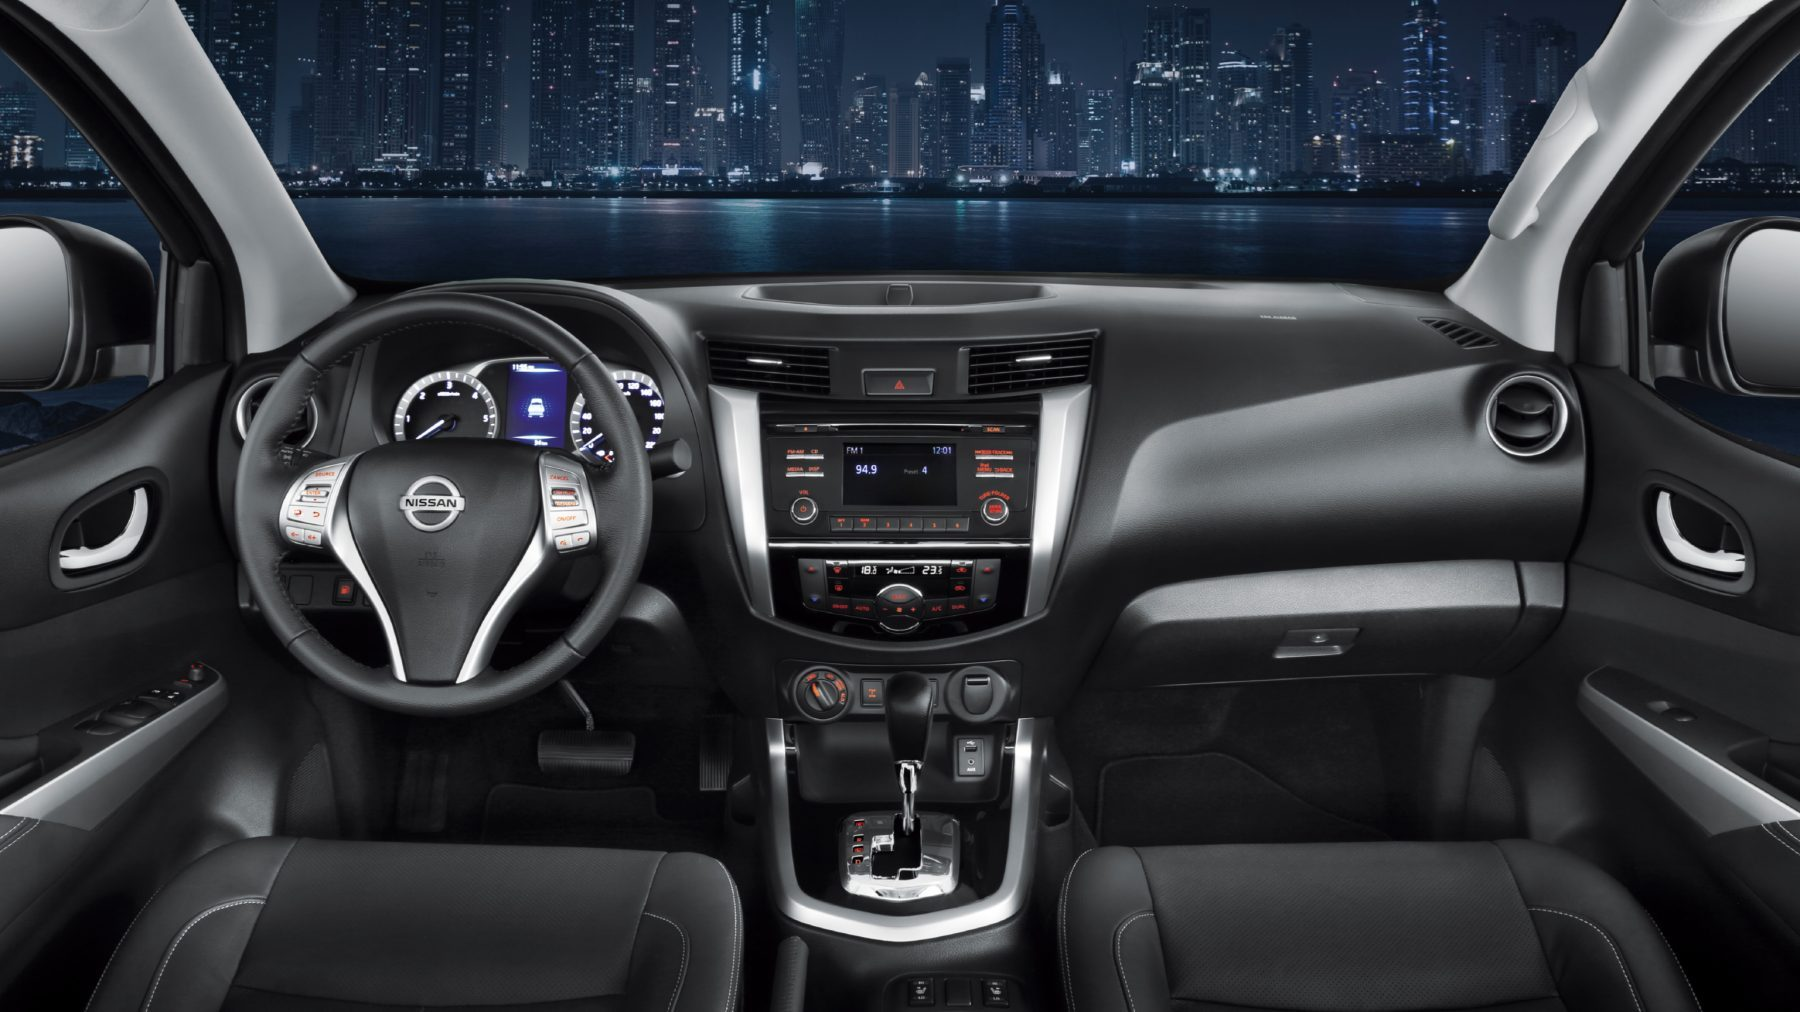 2018 Nissan Navara Prices in UAE, Gulf Specs & Reviews for ...